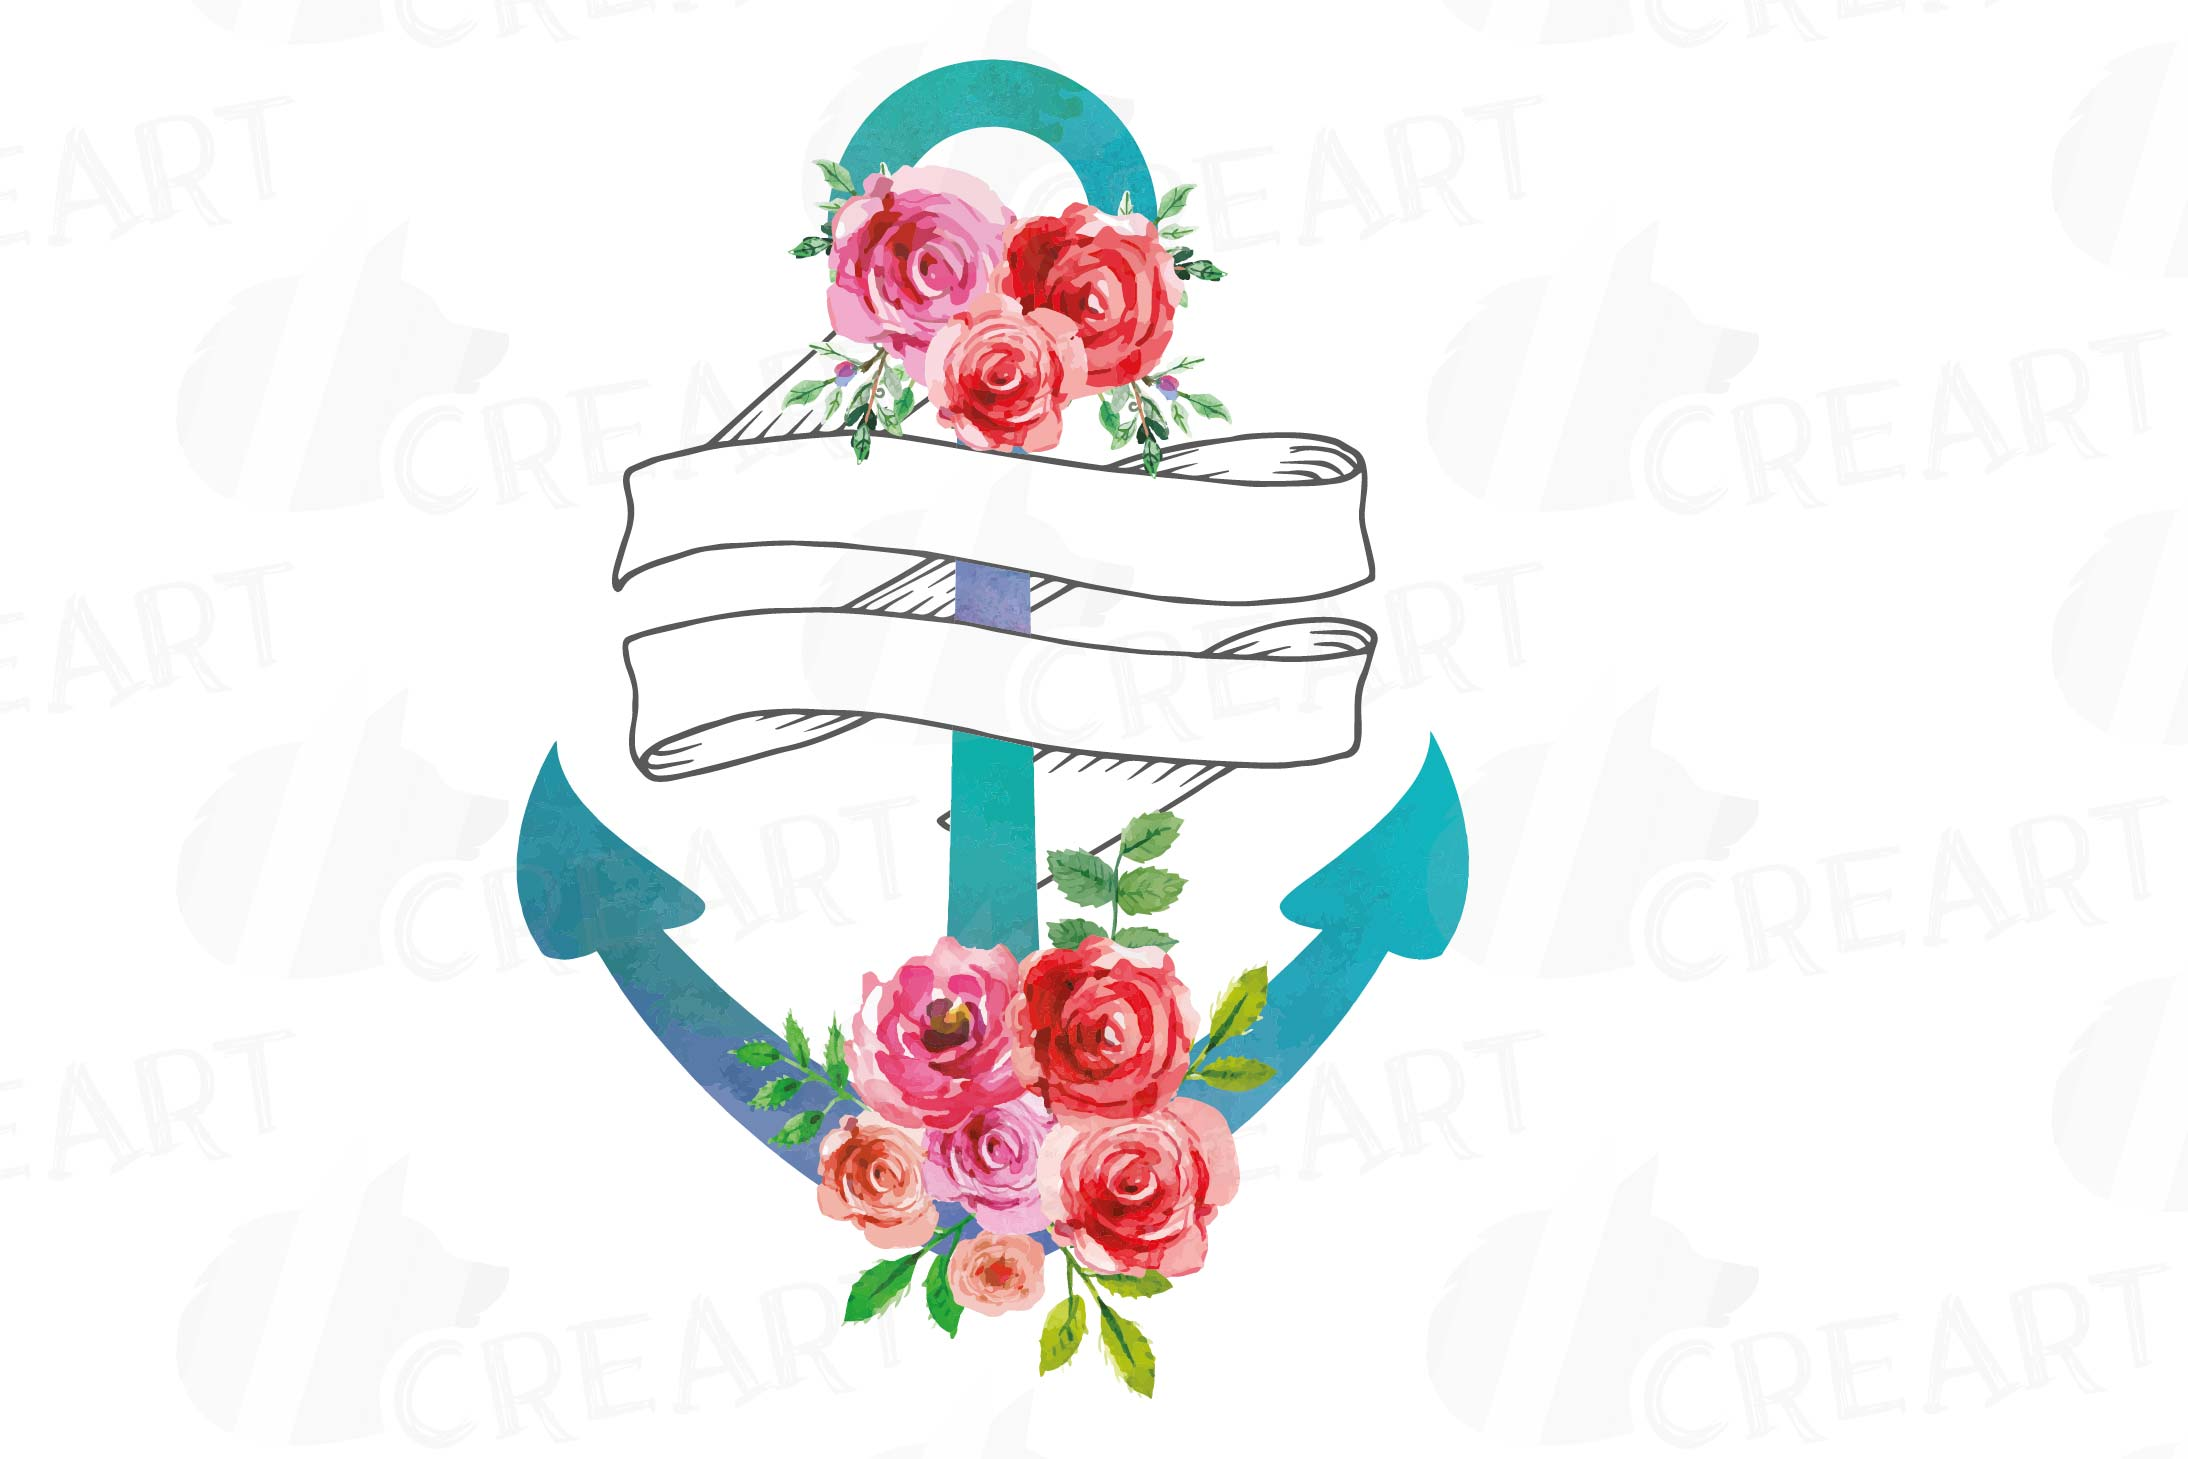 Hope anchors the soul watercolor floral clip art set.